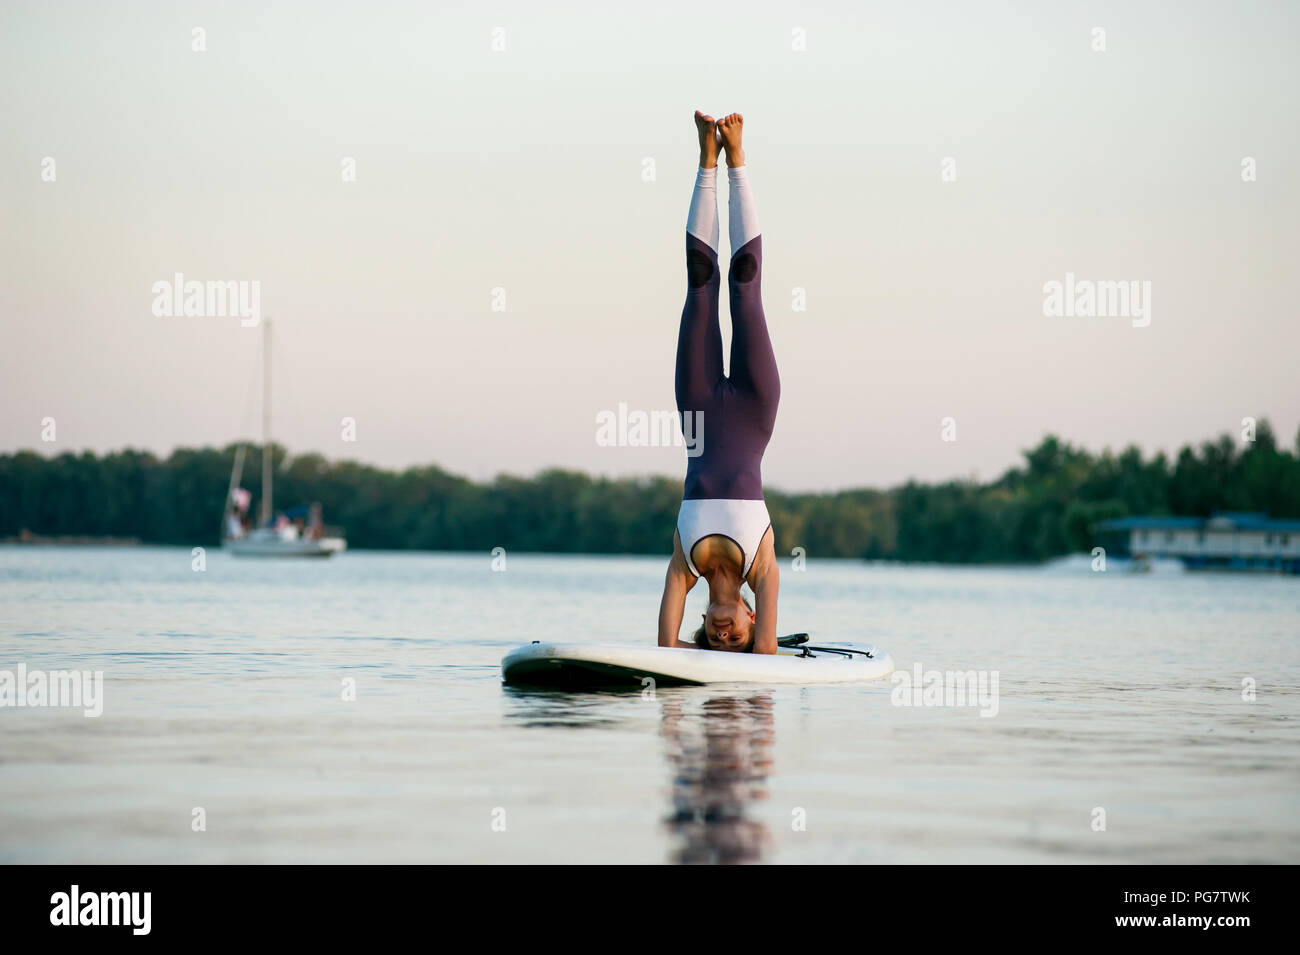 stand up paddle board yoga performed by beautiful girl on the bright city background, girl is standing on her head - Stock Image